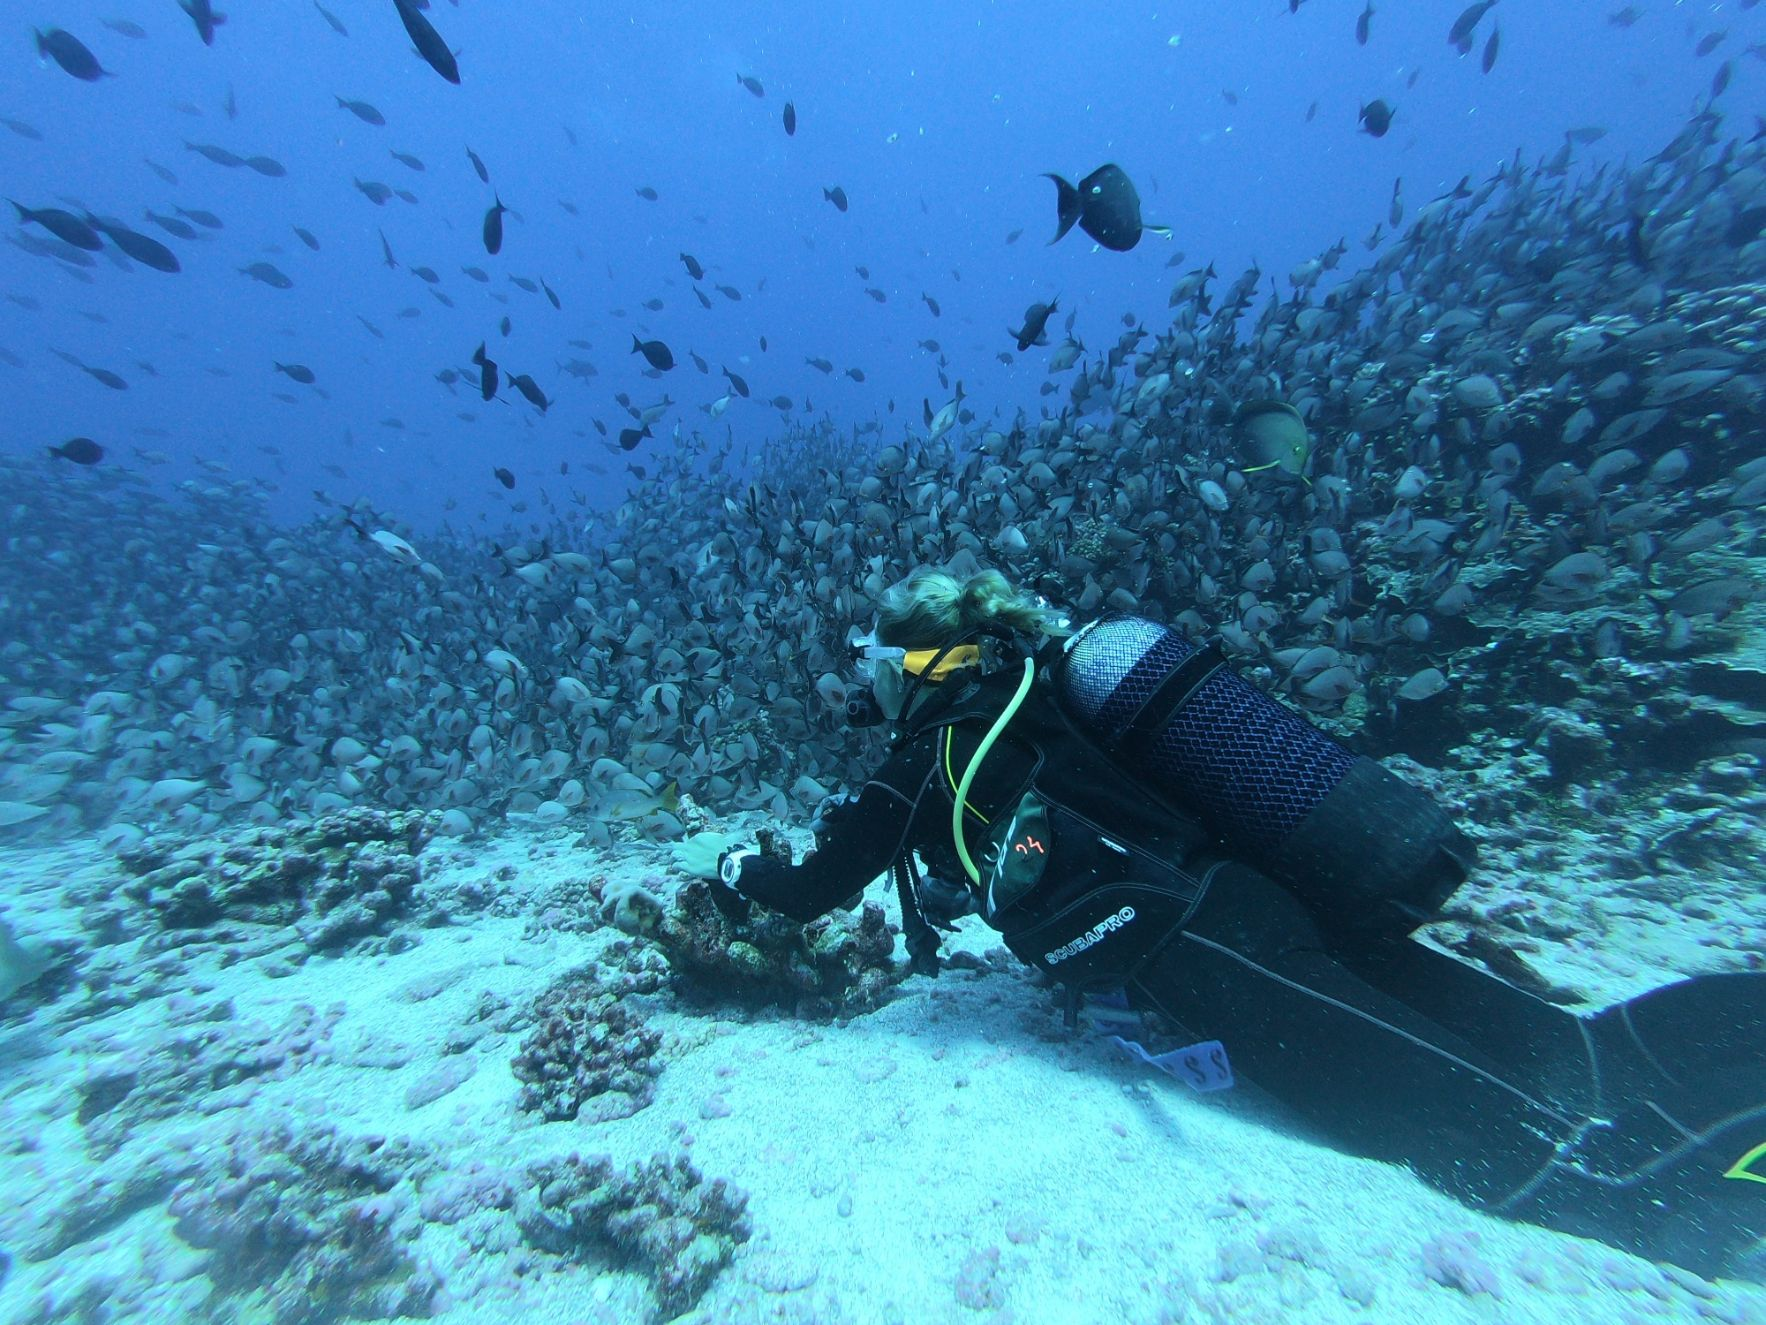 diver underwater with a school of fish and a coral reef